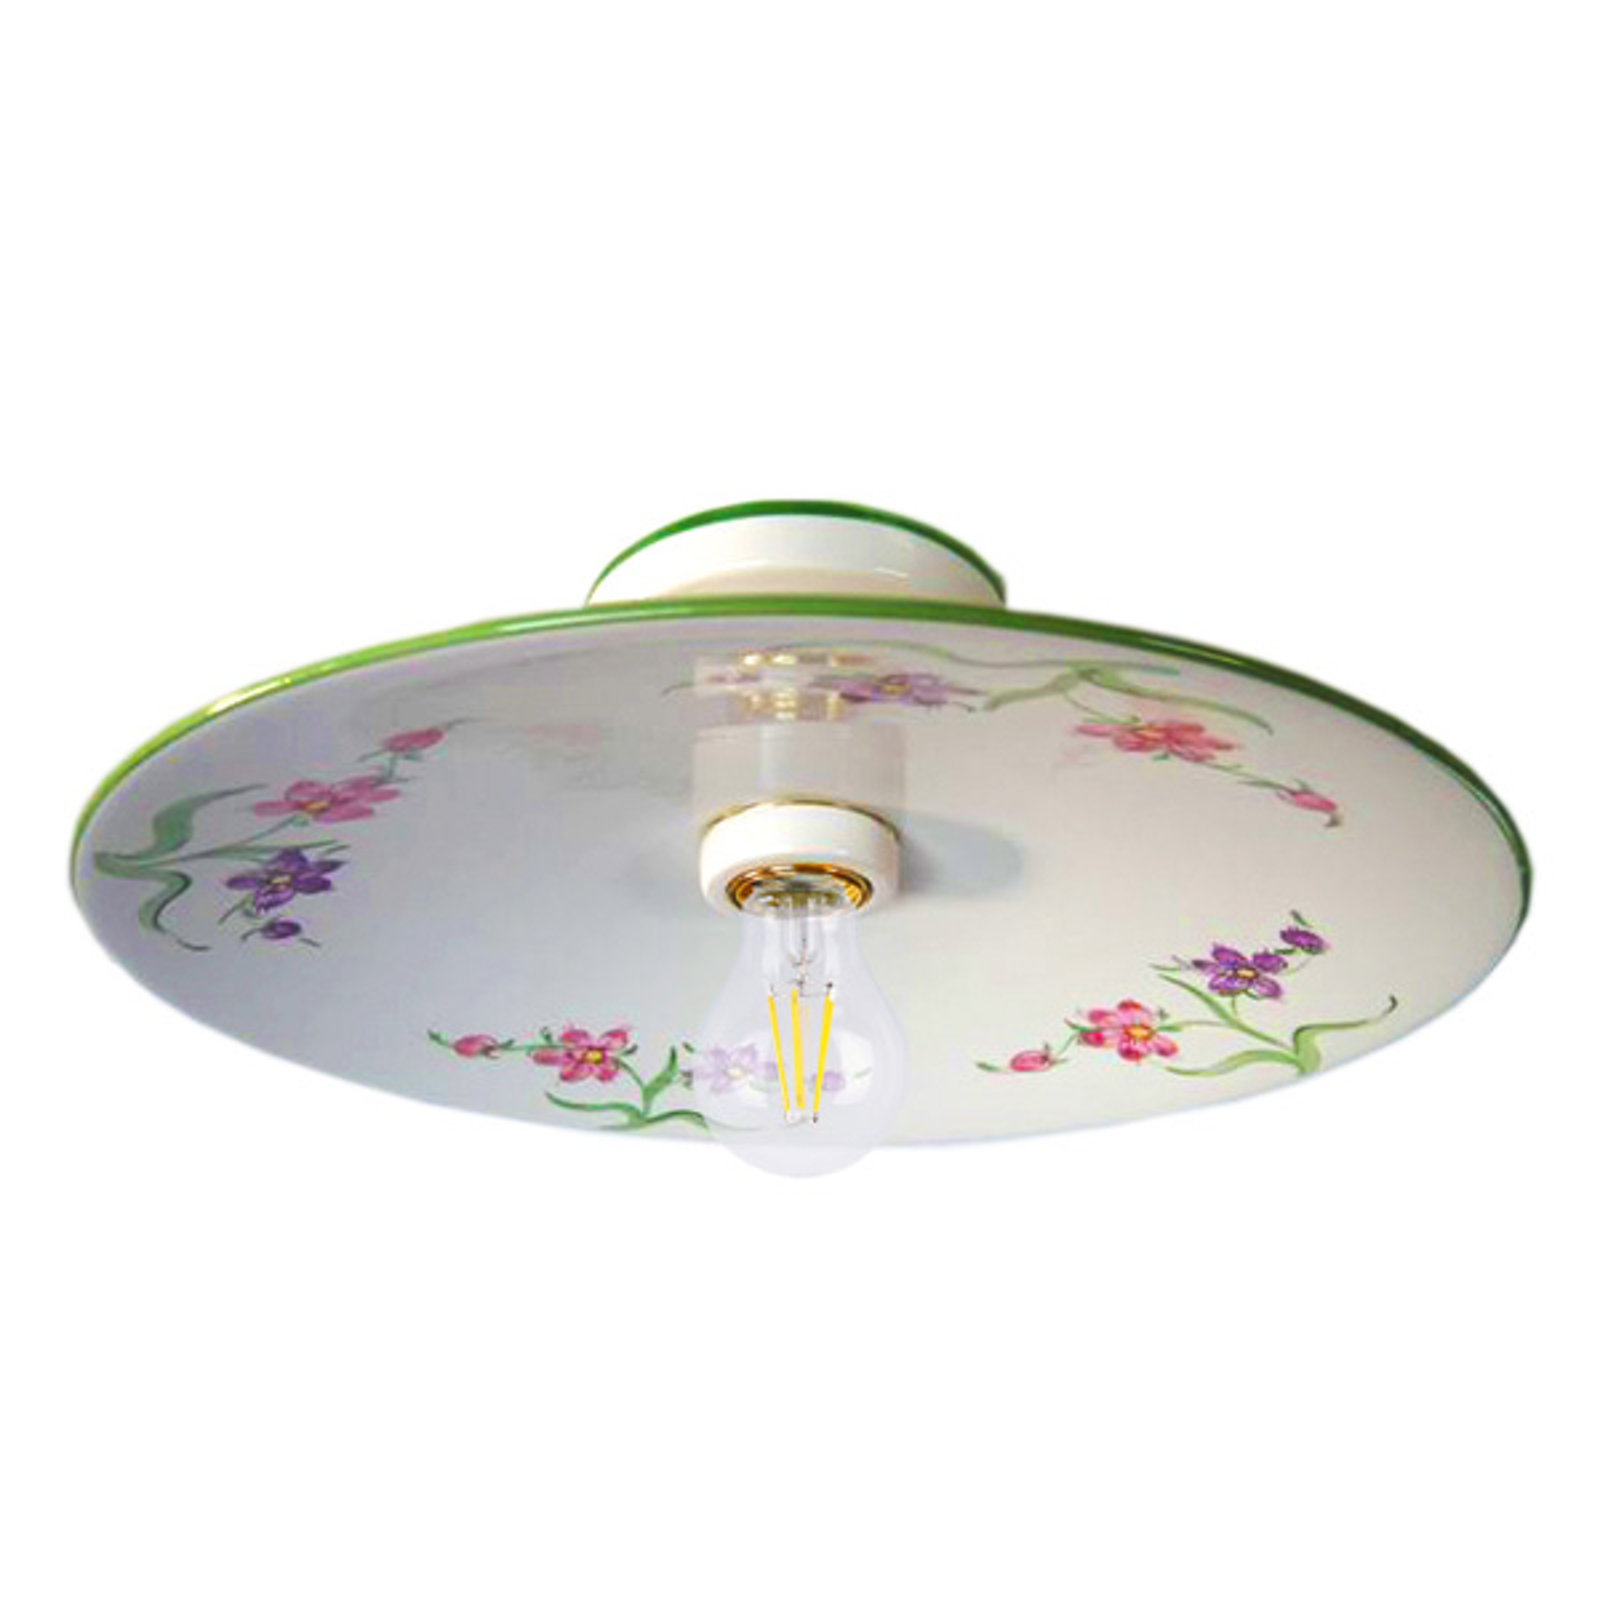 Ceramic ceiling light Ambra - country house style_3046023_1